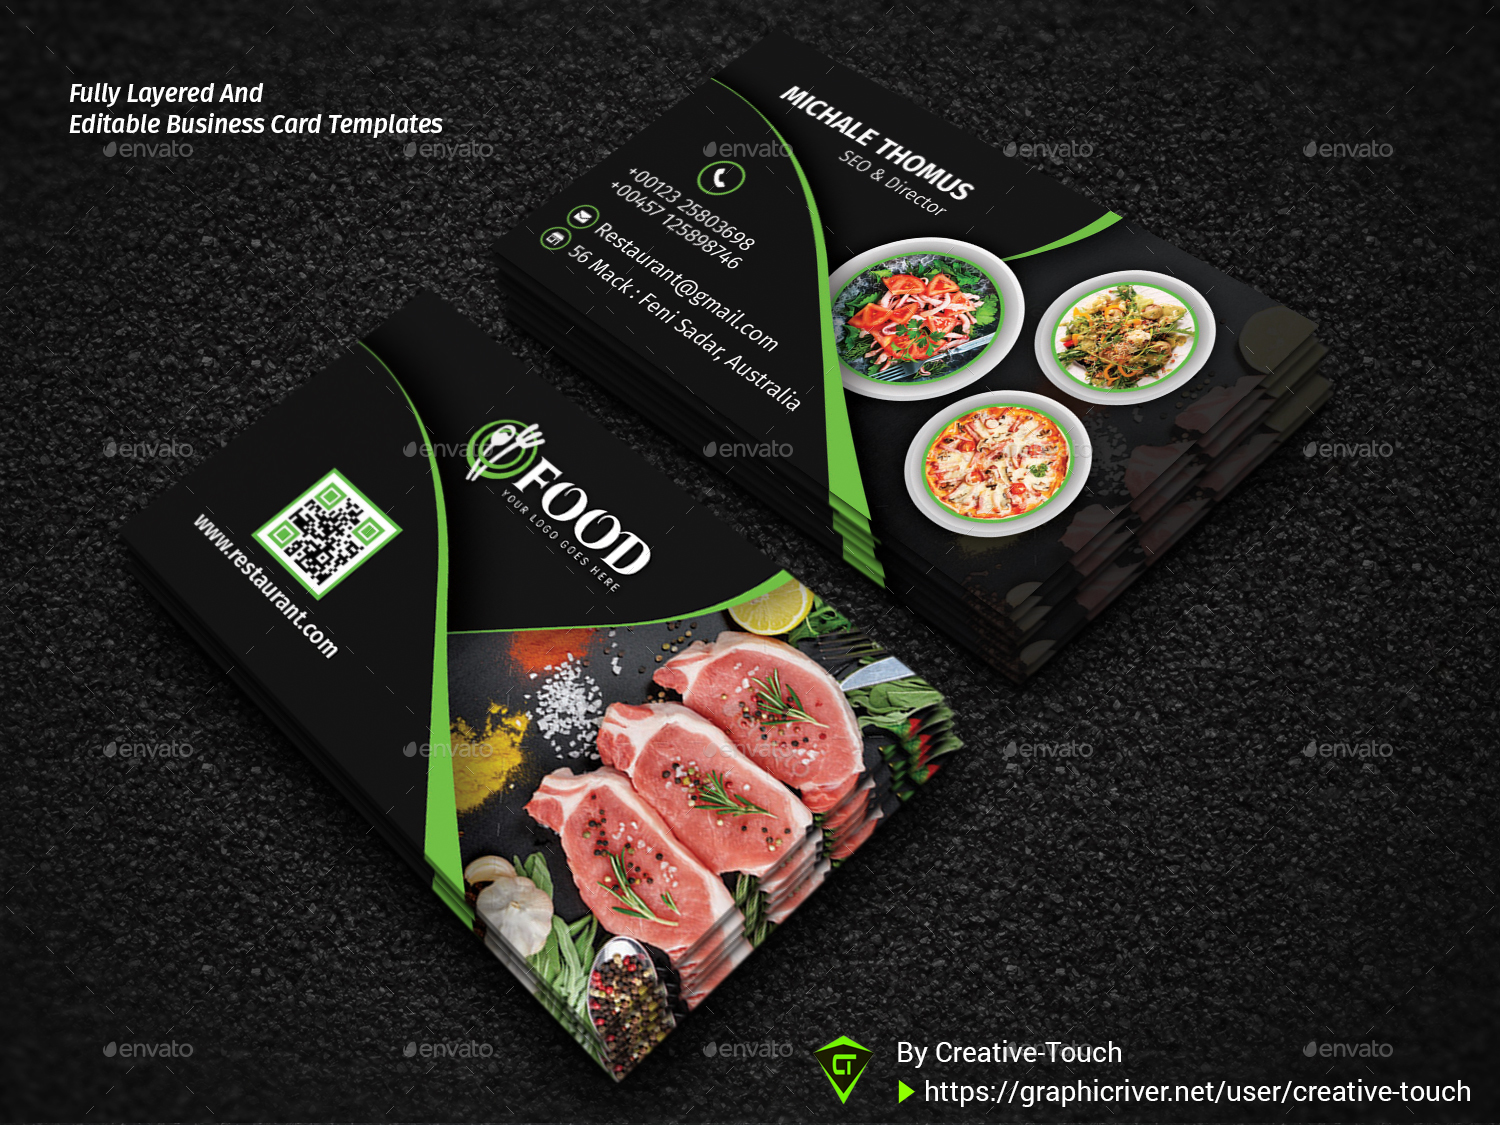 restaurant business cards templates free restaurant business card by creative touch graphicriver restaurant business cards templates free - Restaurant Business Card